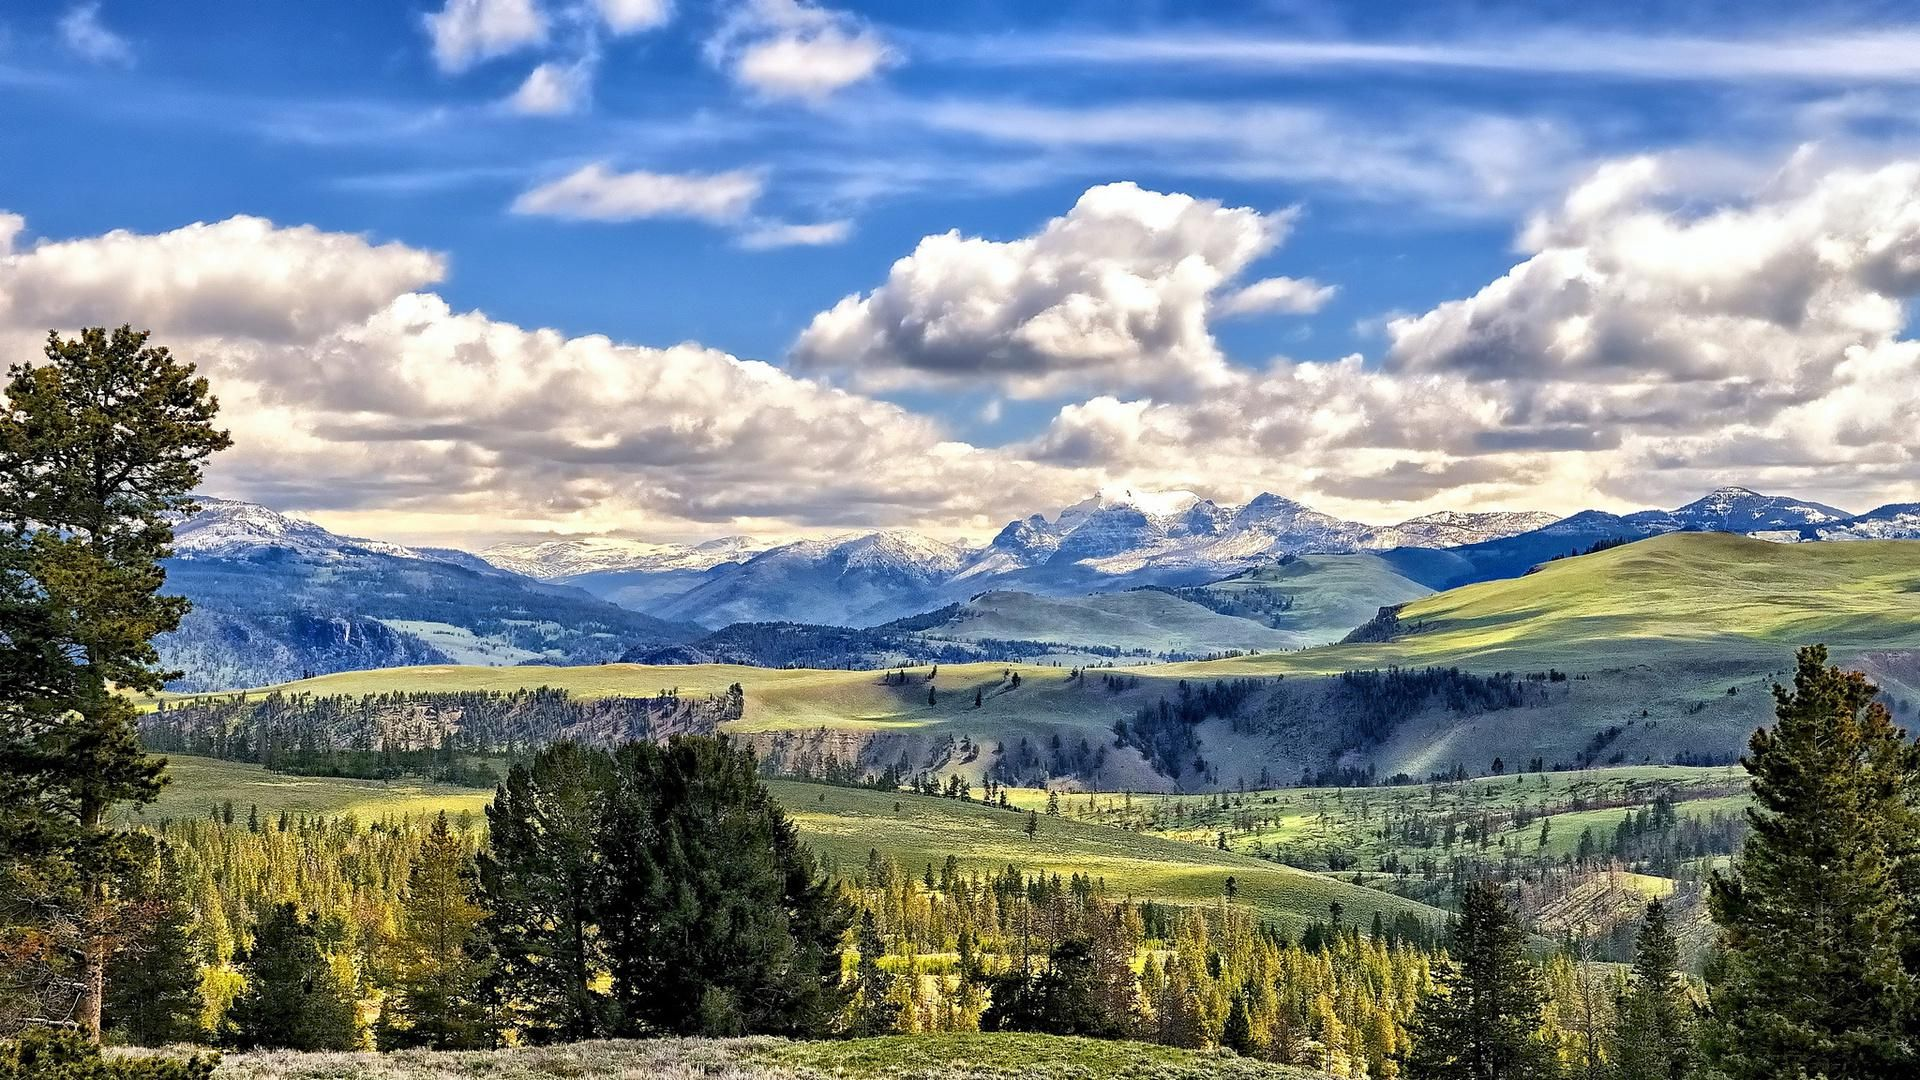 Yellowstone Picture For Free Hd Desktop Wallpaper Instagram Photo